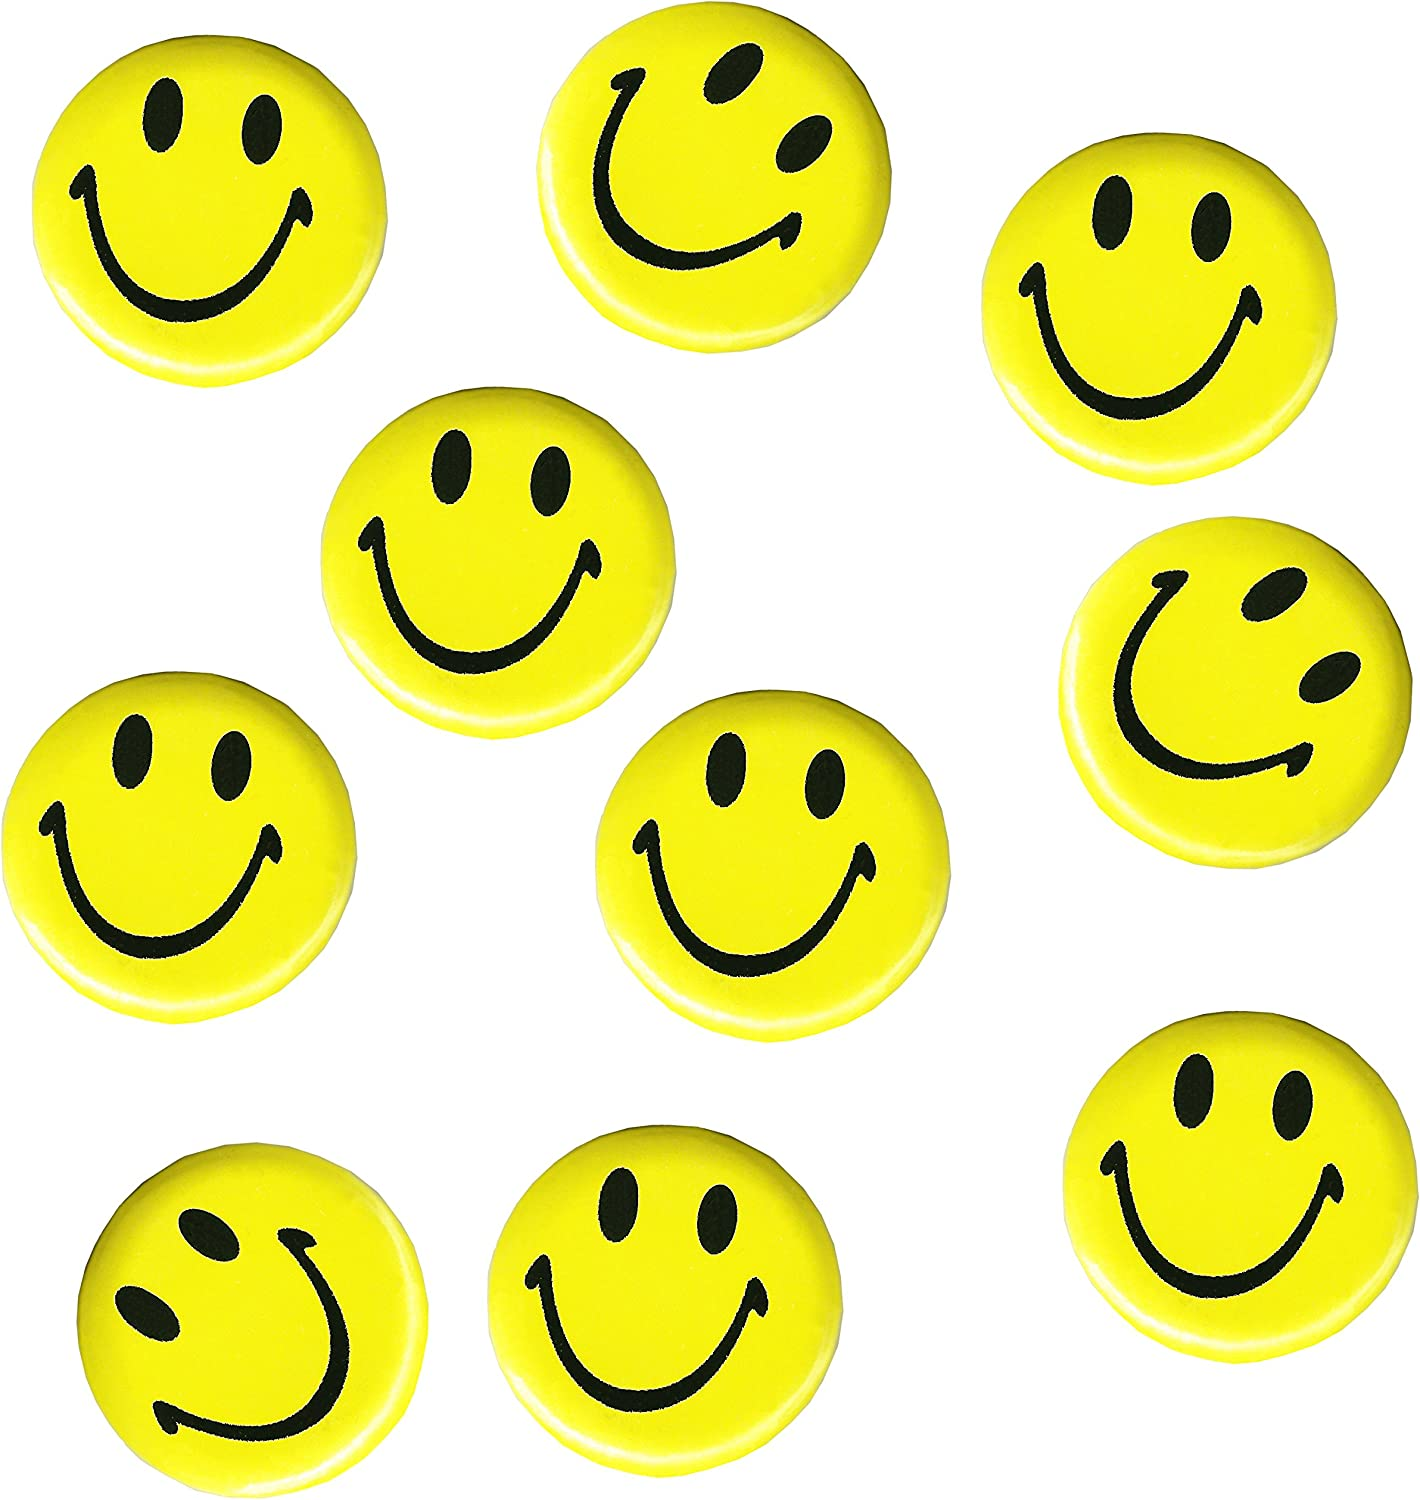 Oxford Novelties 1 10 20 30 Yellow Smiley Acid House Emoji Face Badge 3 Cm Wide Rave 80 S 90 S 10 Amazon Co Uk Toys Games